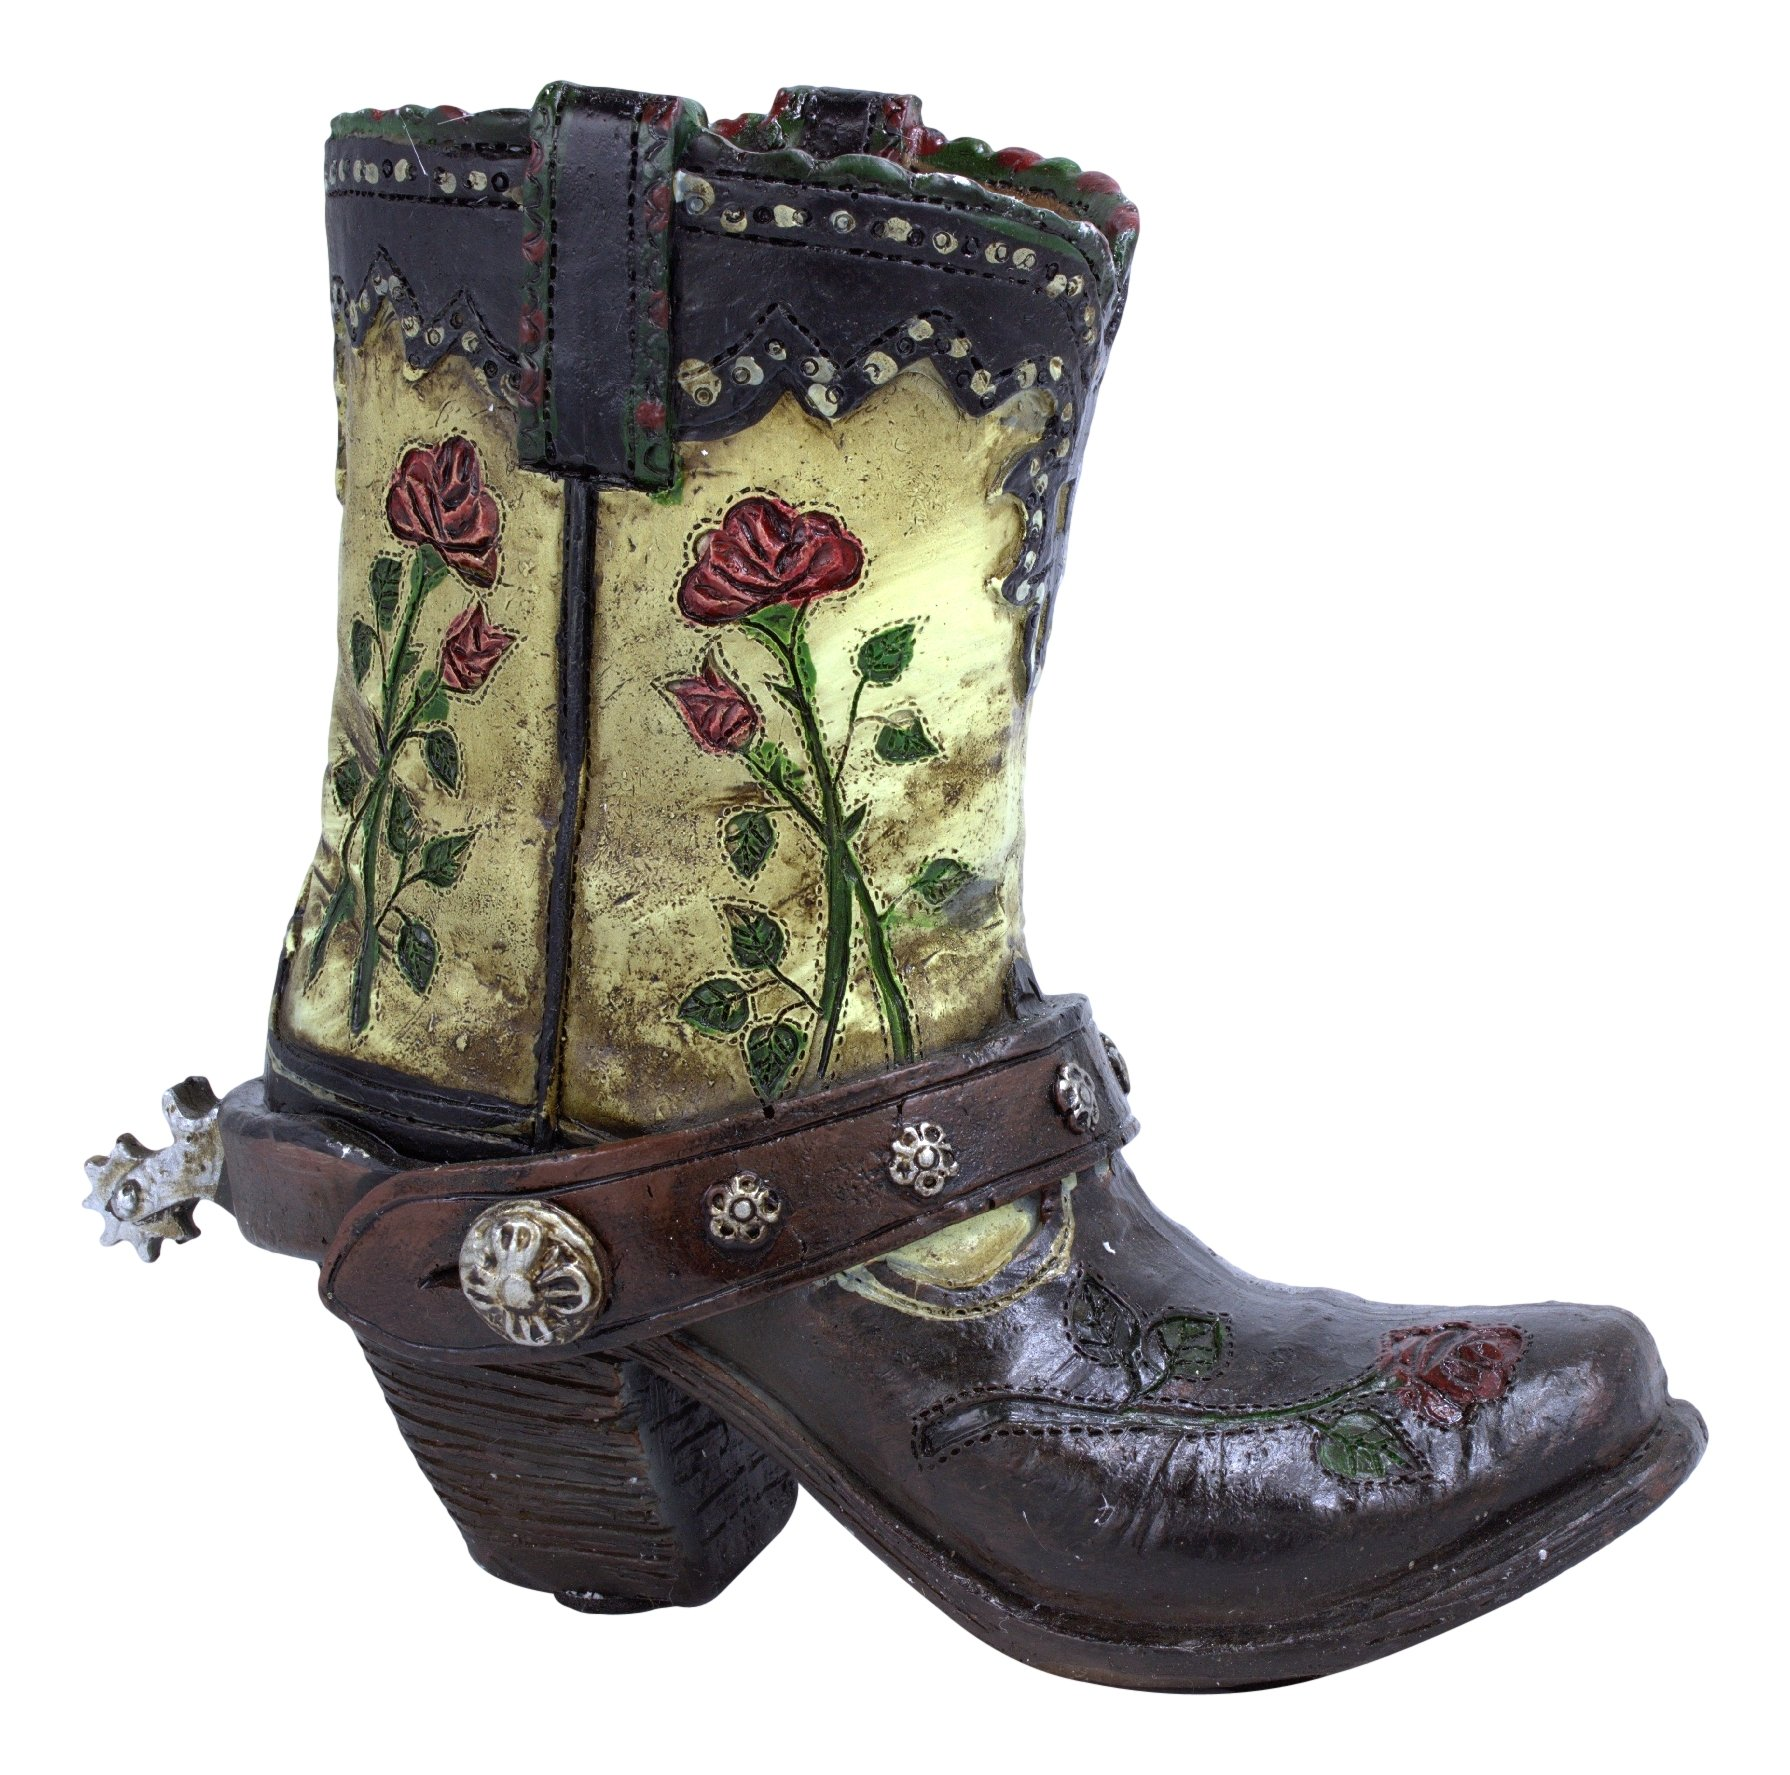 Sat'n Spurs Western Wear Country Small 4.5'' Boot Pencil Cup/Vase, Brown, cream, green, red